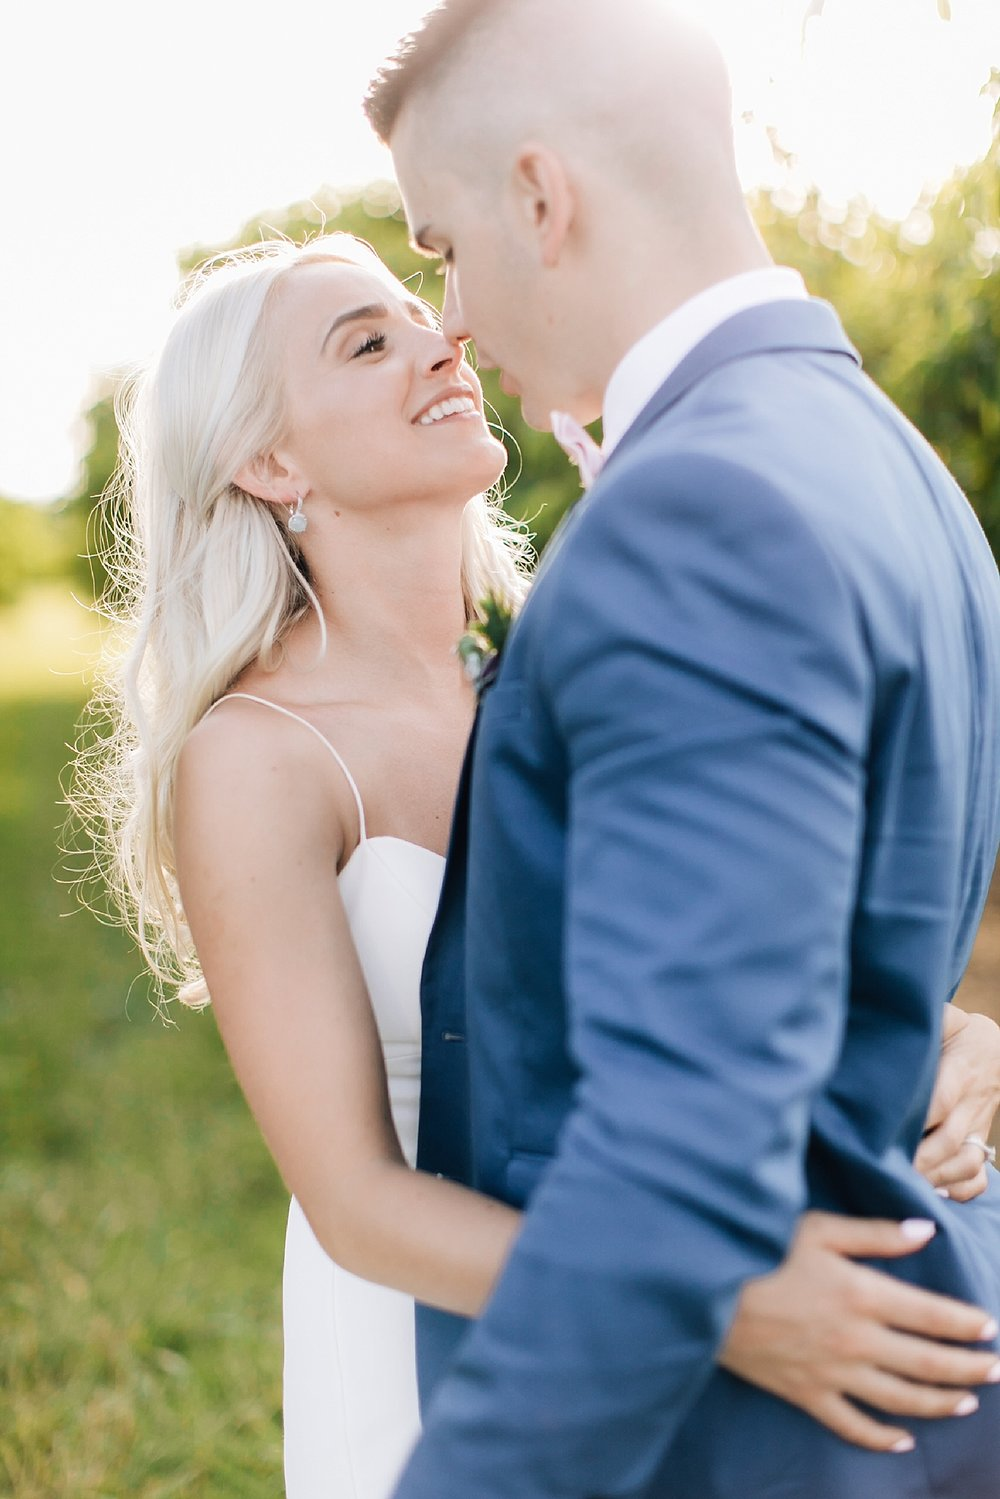 A Unique Outdoor Summer Wedding at Bast Brothers Garden Center by Magdalena Studios_0026.jpg